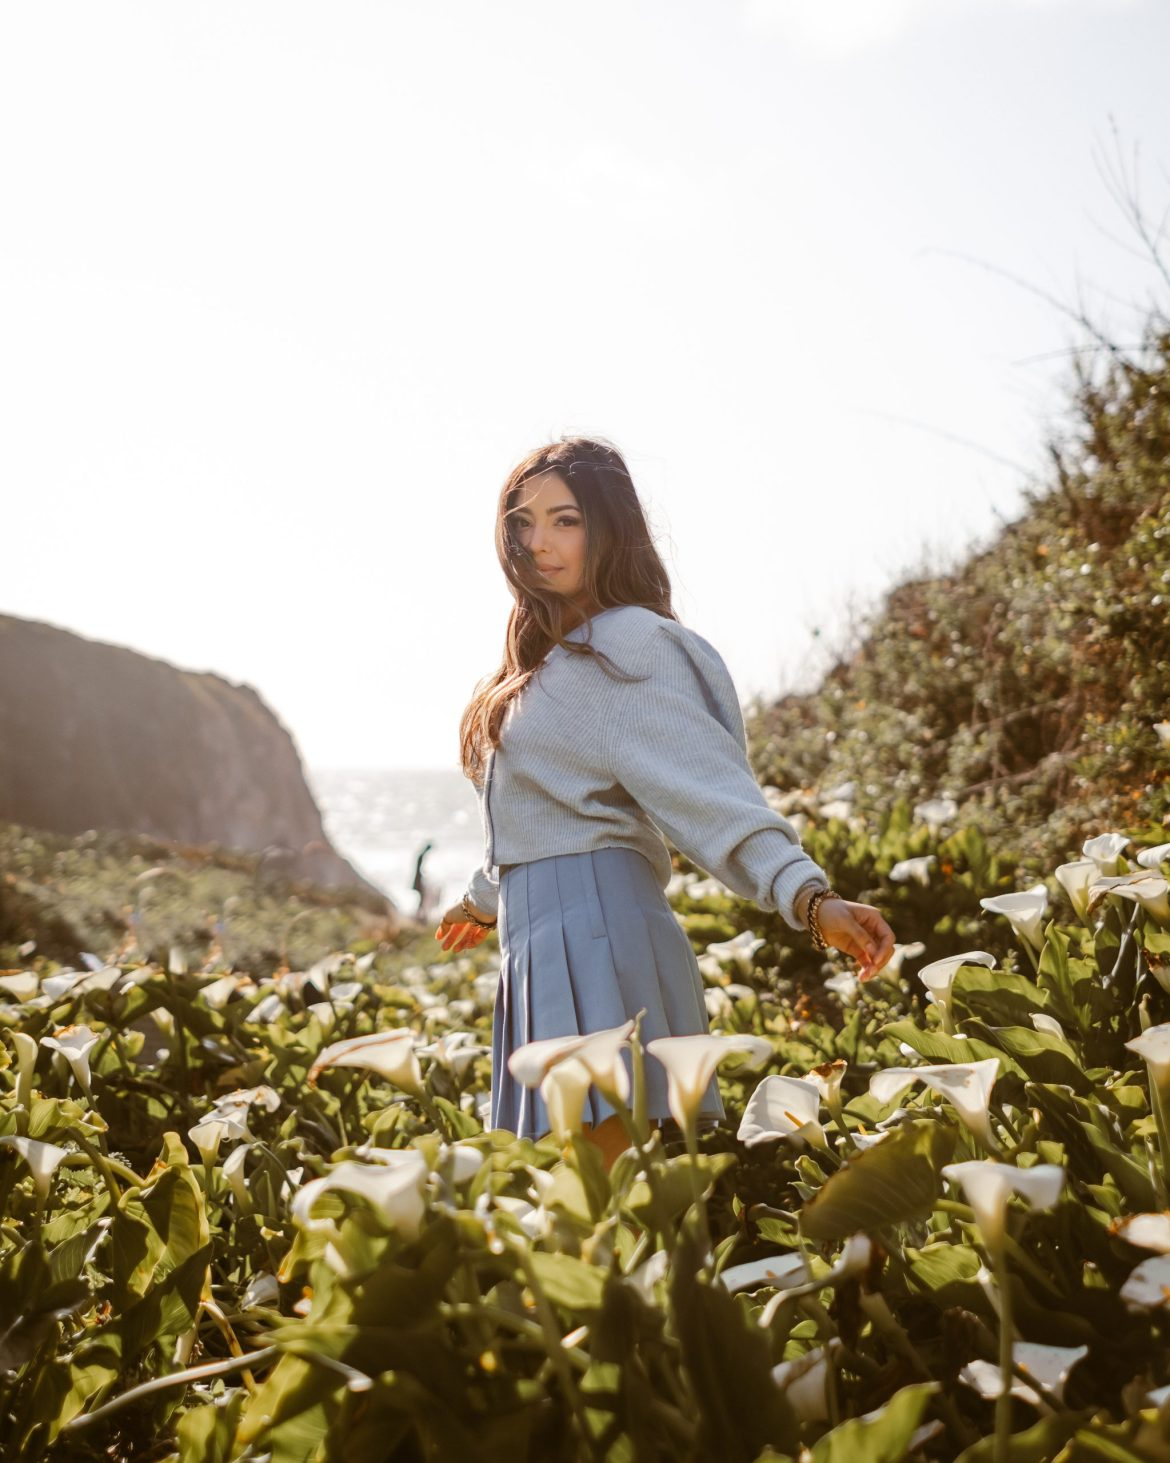 Baby Blues in Big Sur - Big Sur outfit, Big Sur photoshoot, Calla Lily Valley, California outfit